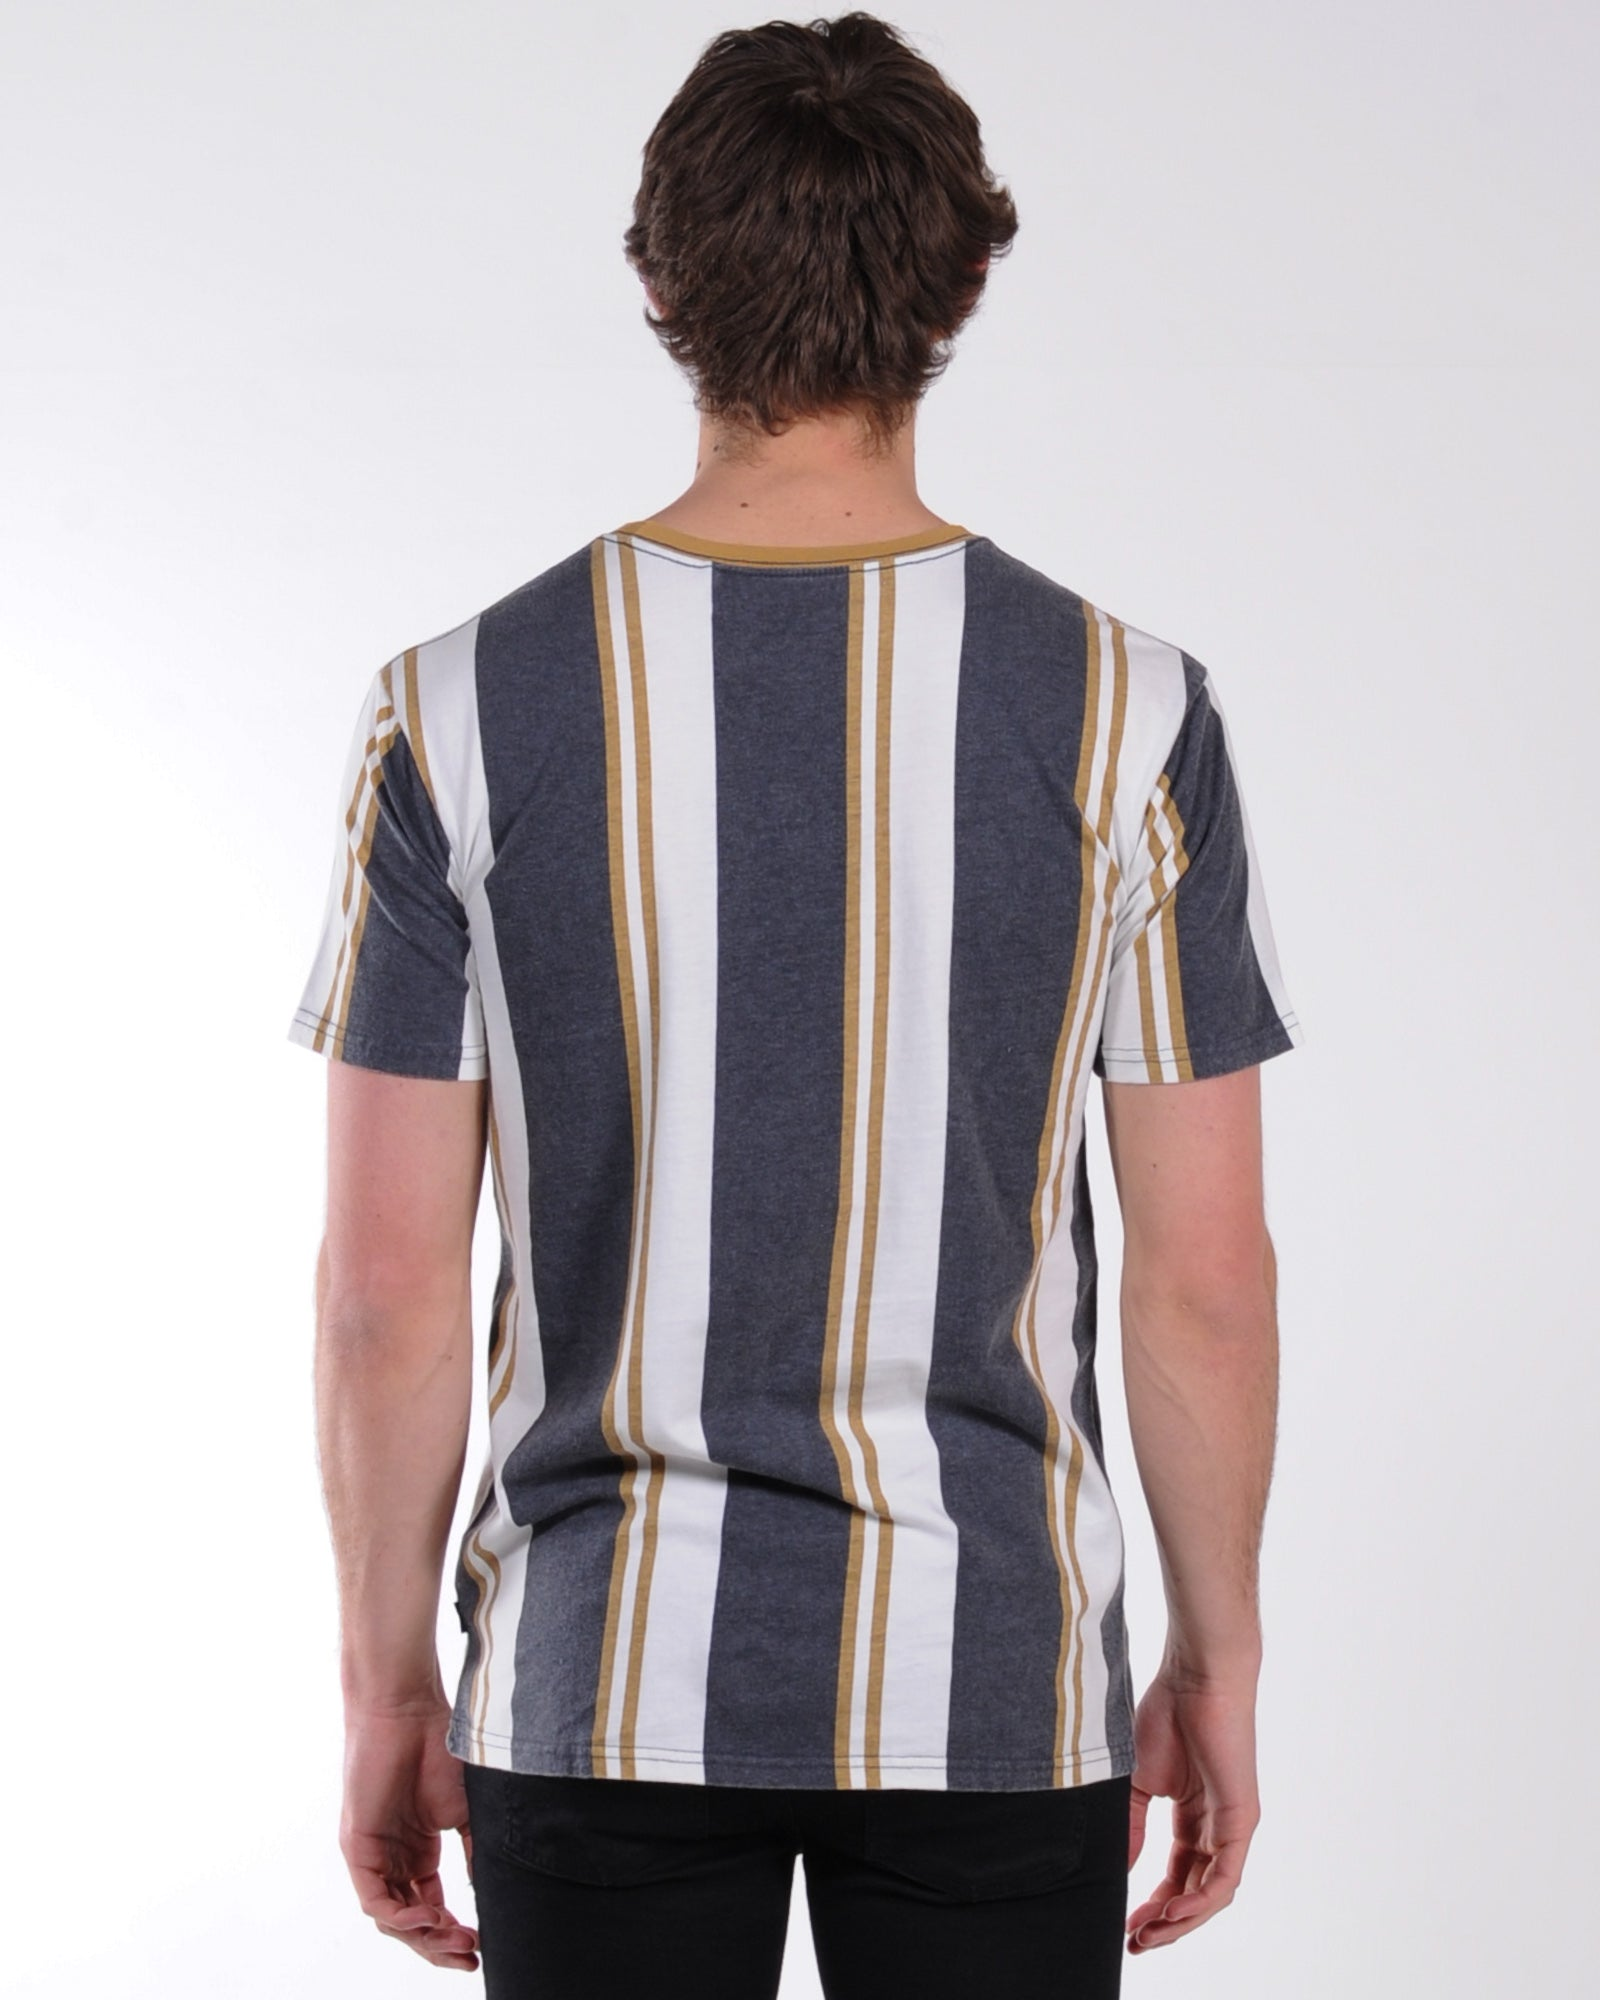 Silent Theory Parts Vert Stripe Tee - Coal